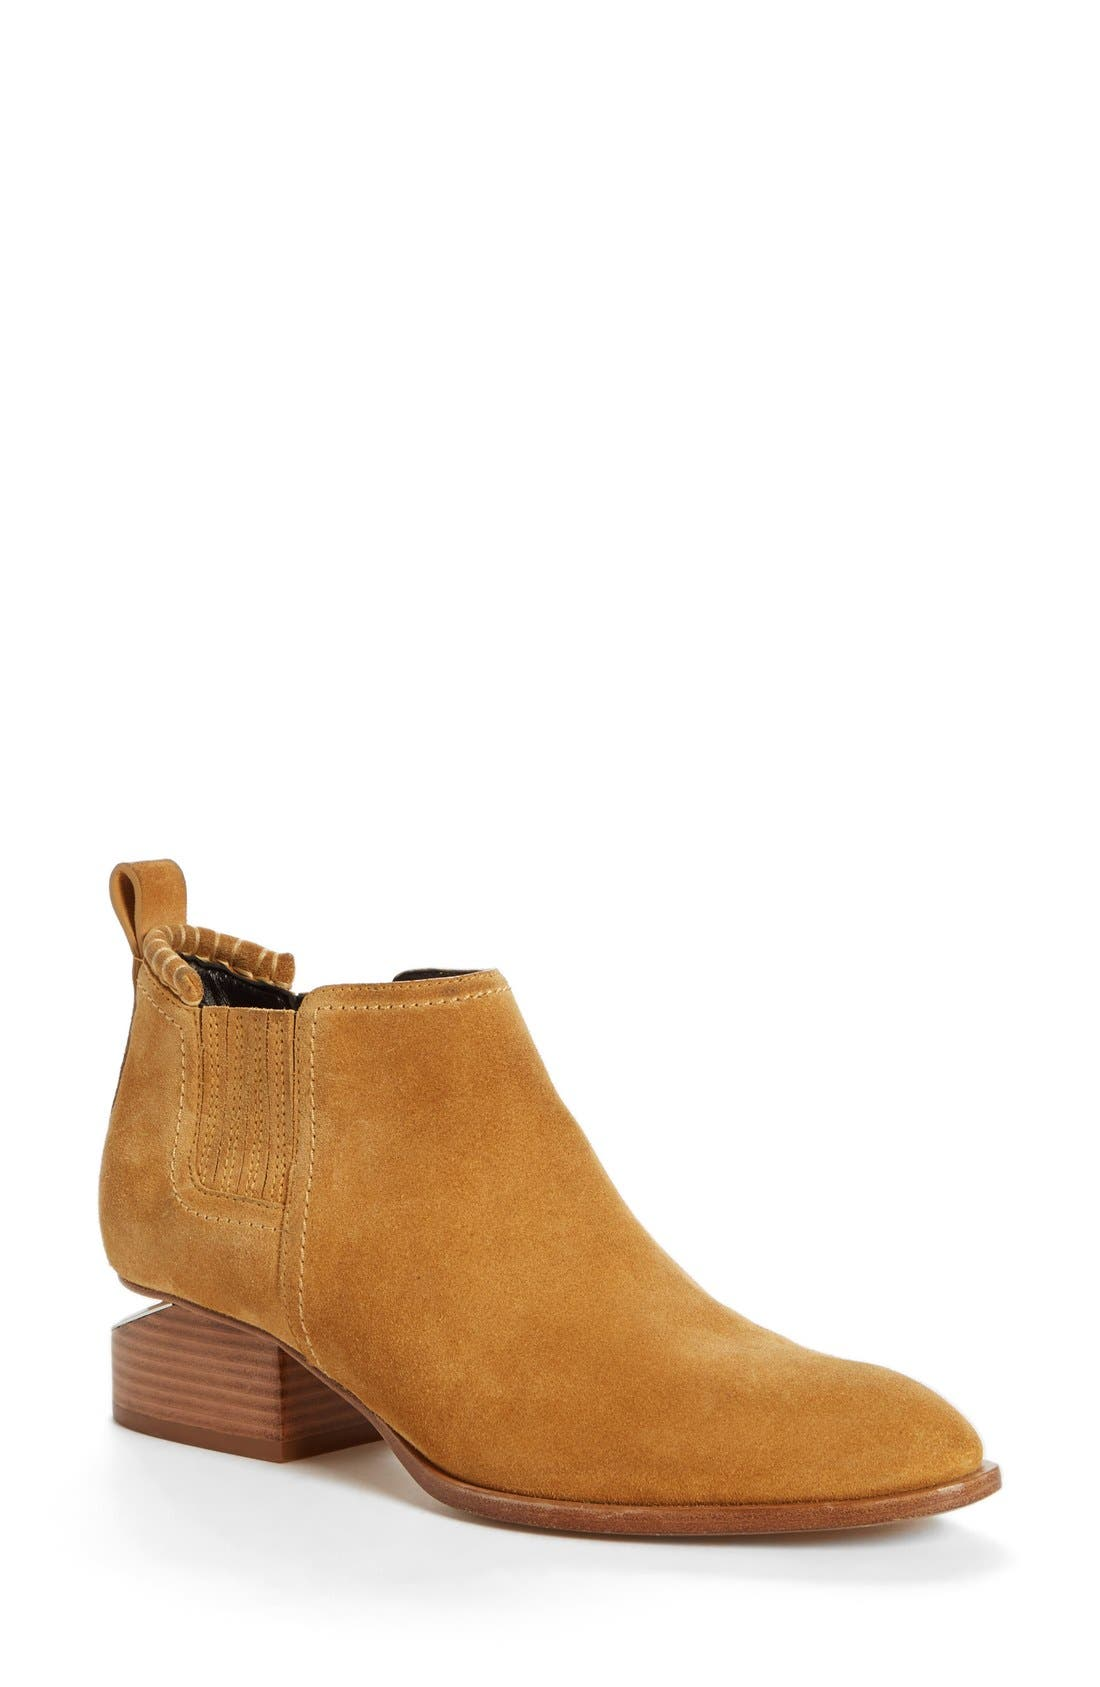 Alternate Image 1 Selected - Alexander Wang 'Kori' Bootie (Women)